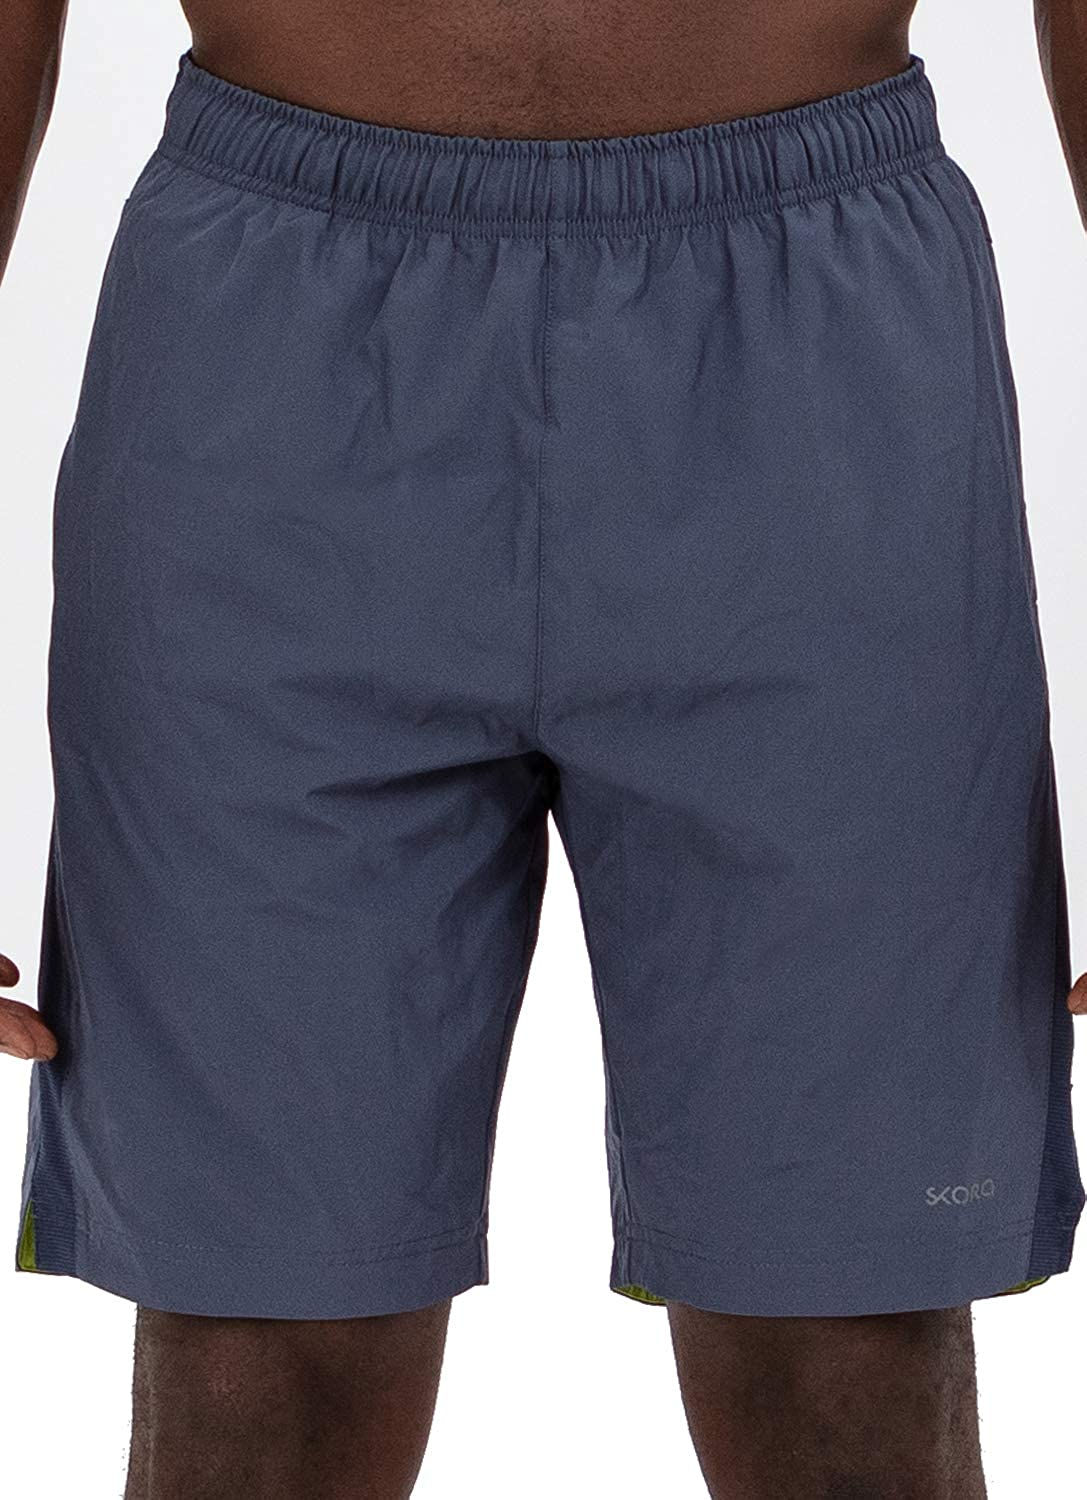 Skora Mens Active Shorts Quick Dry Woven Stretch Athletic Running Performance 9 Inch Inseam with Pockets and Zip Back Pocket